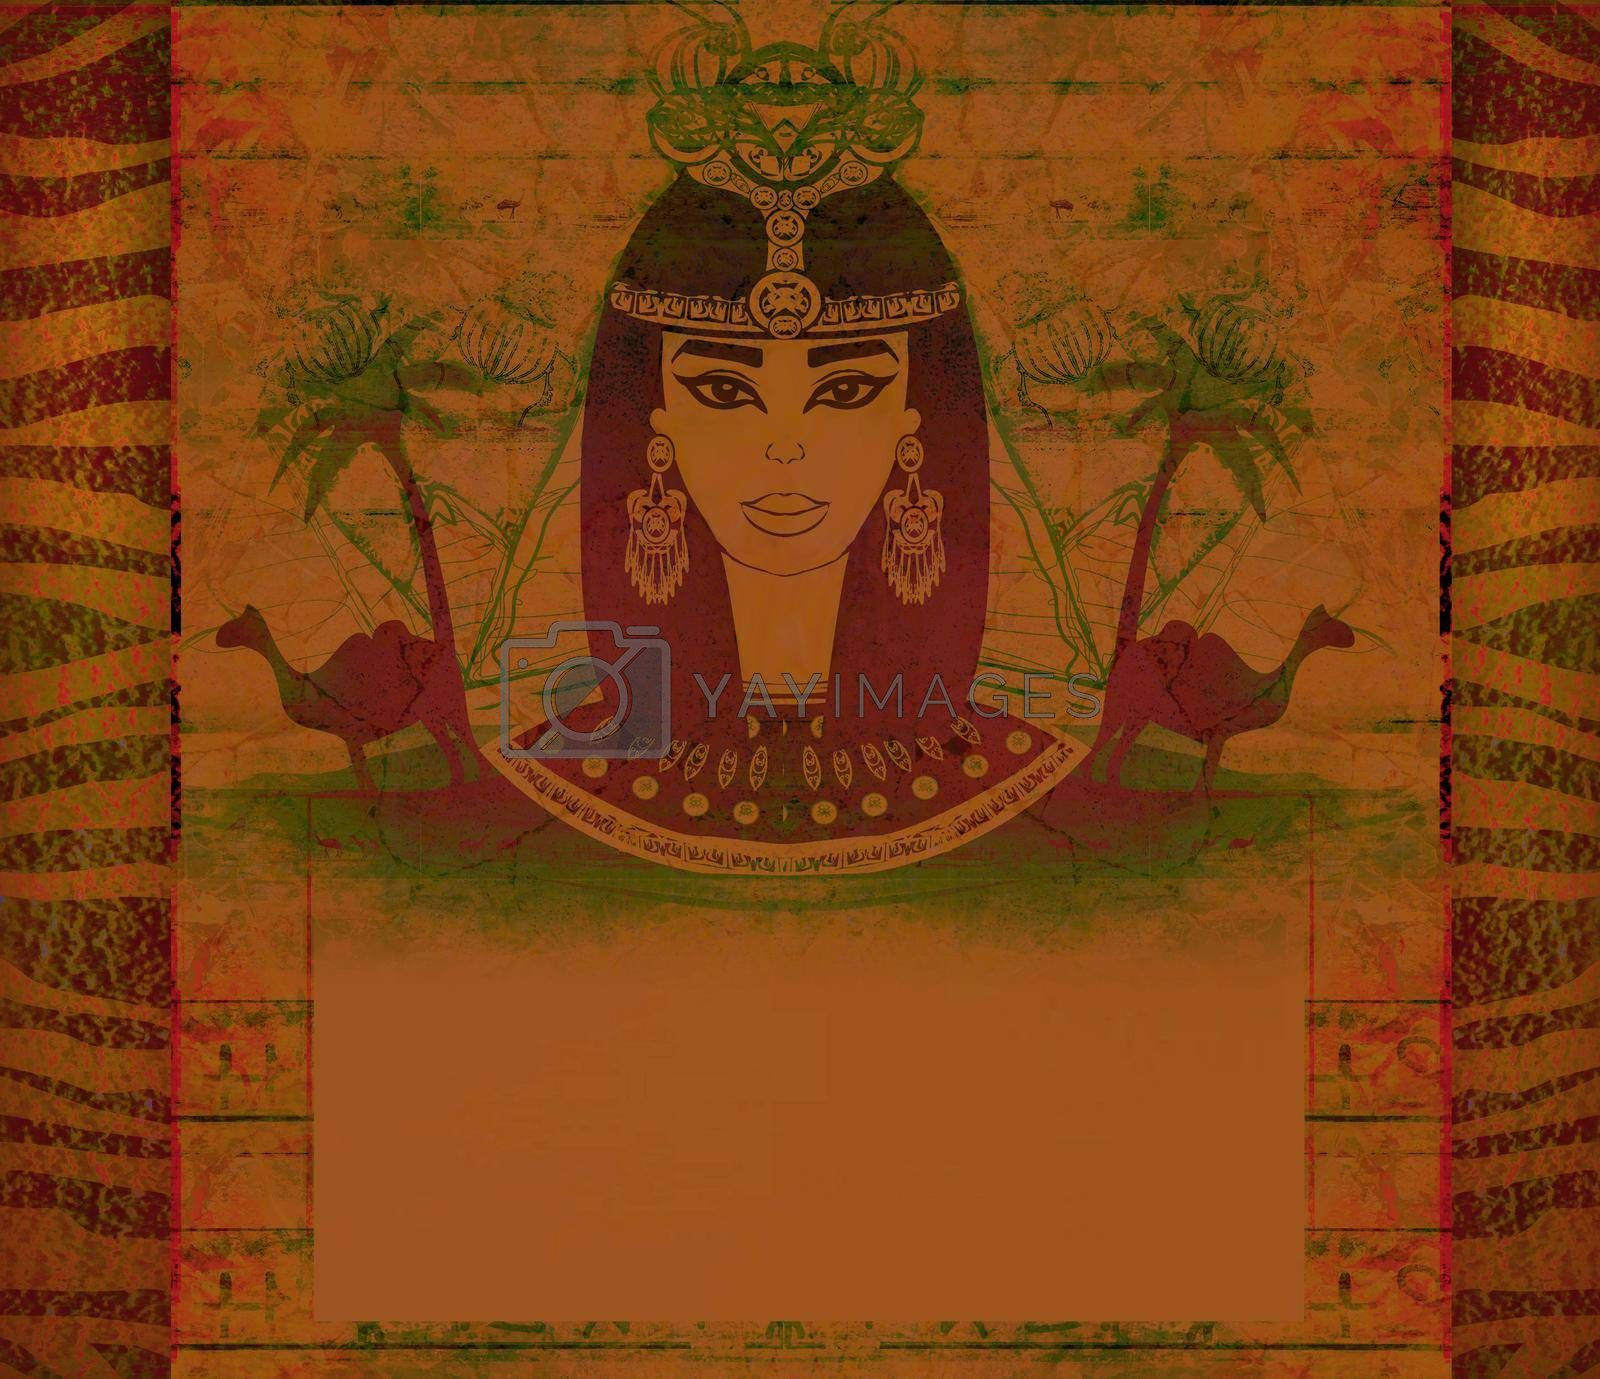 Royalty free image of old paper with Egyptian queen - artistic frame  by JackyBrown